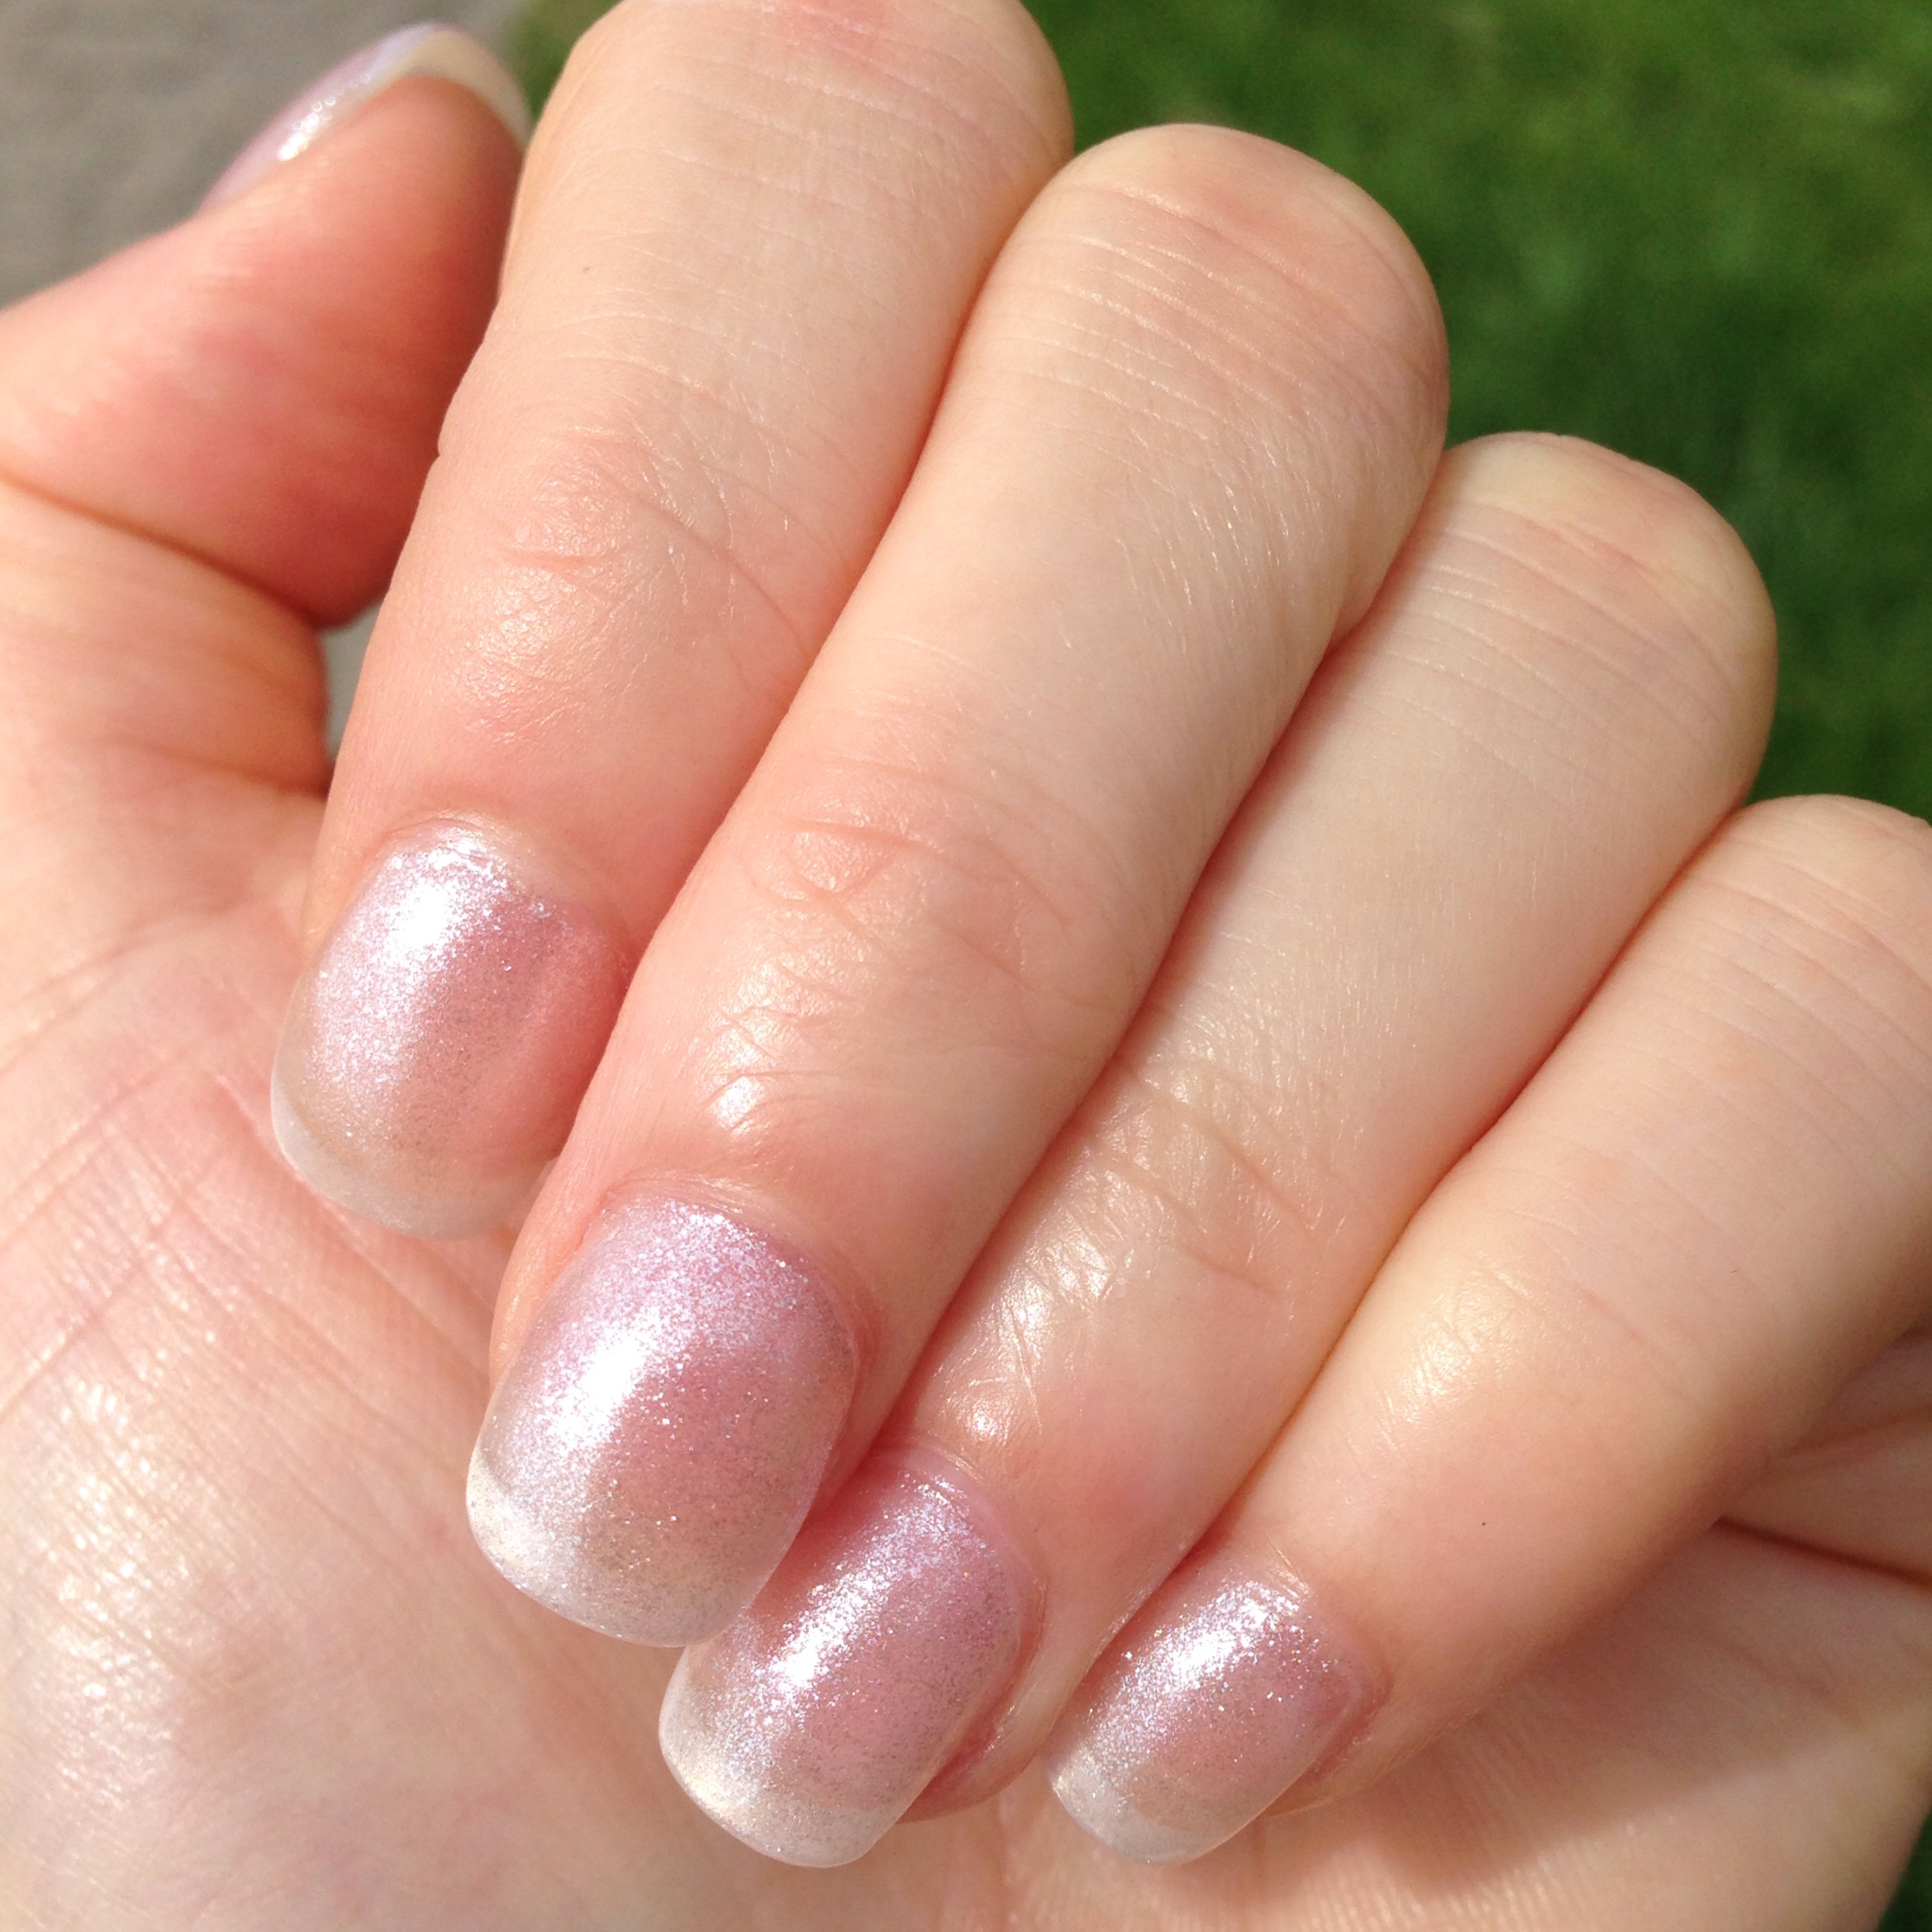 Pure Pearlfection by Essie